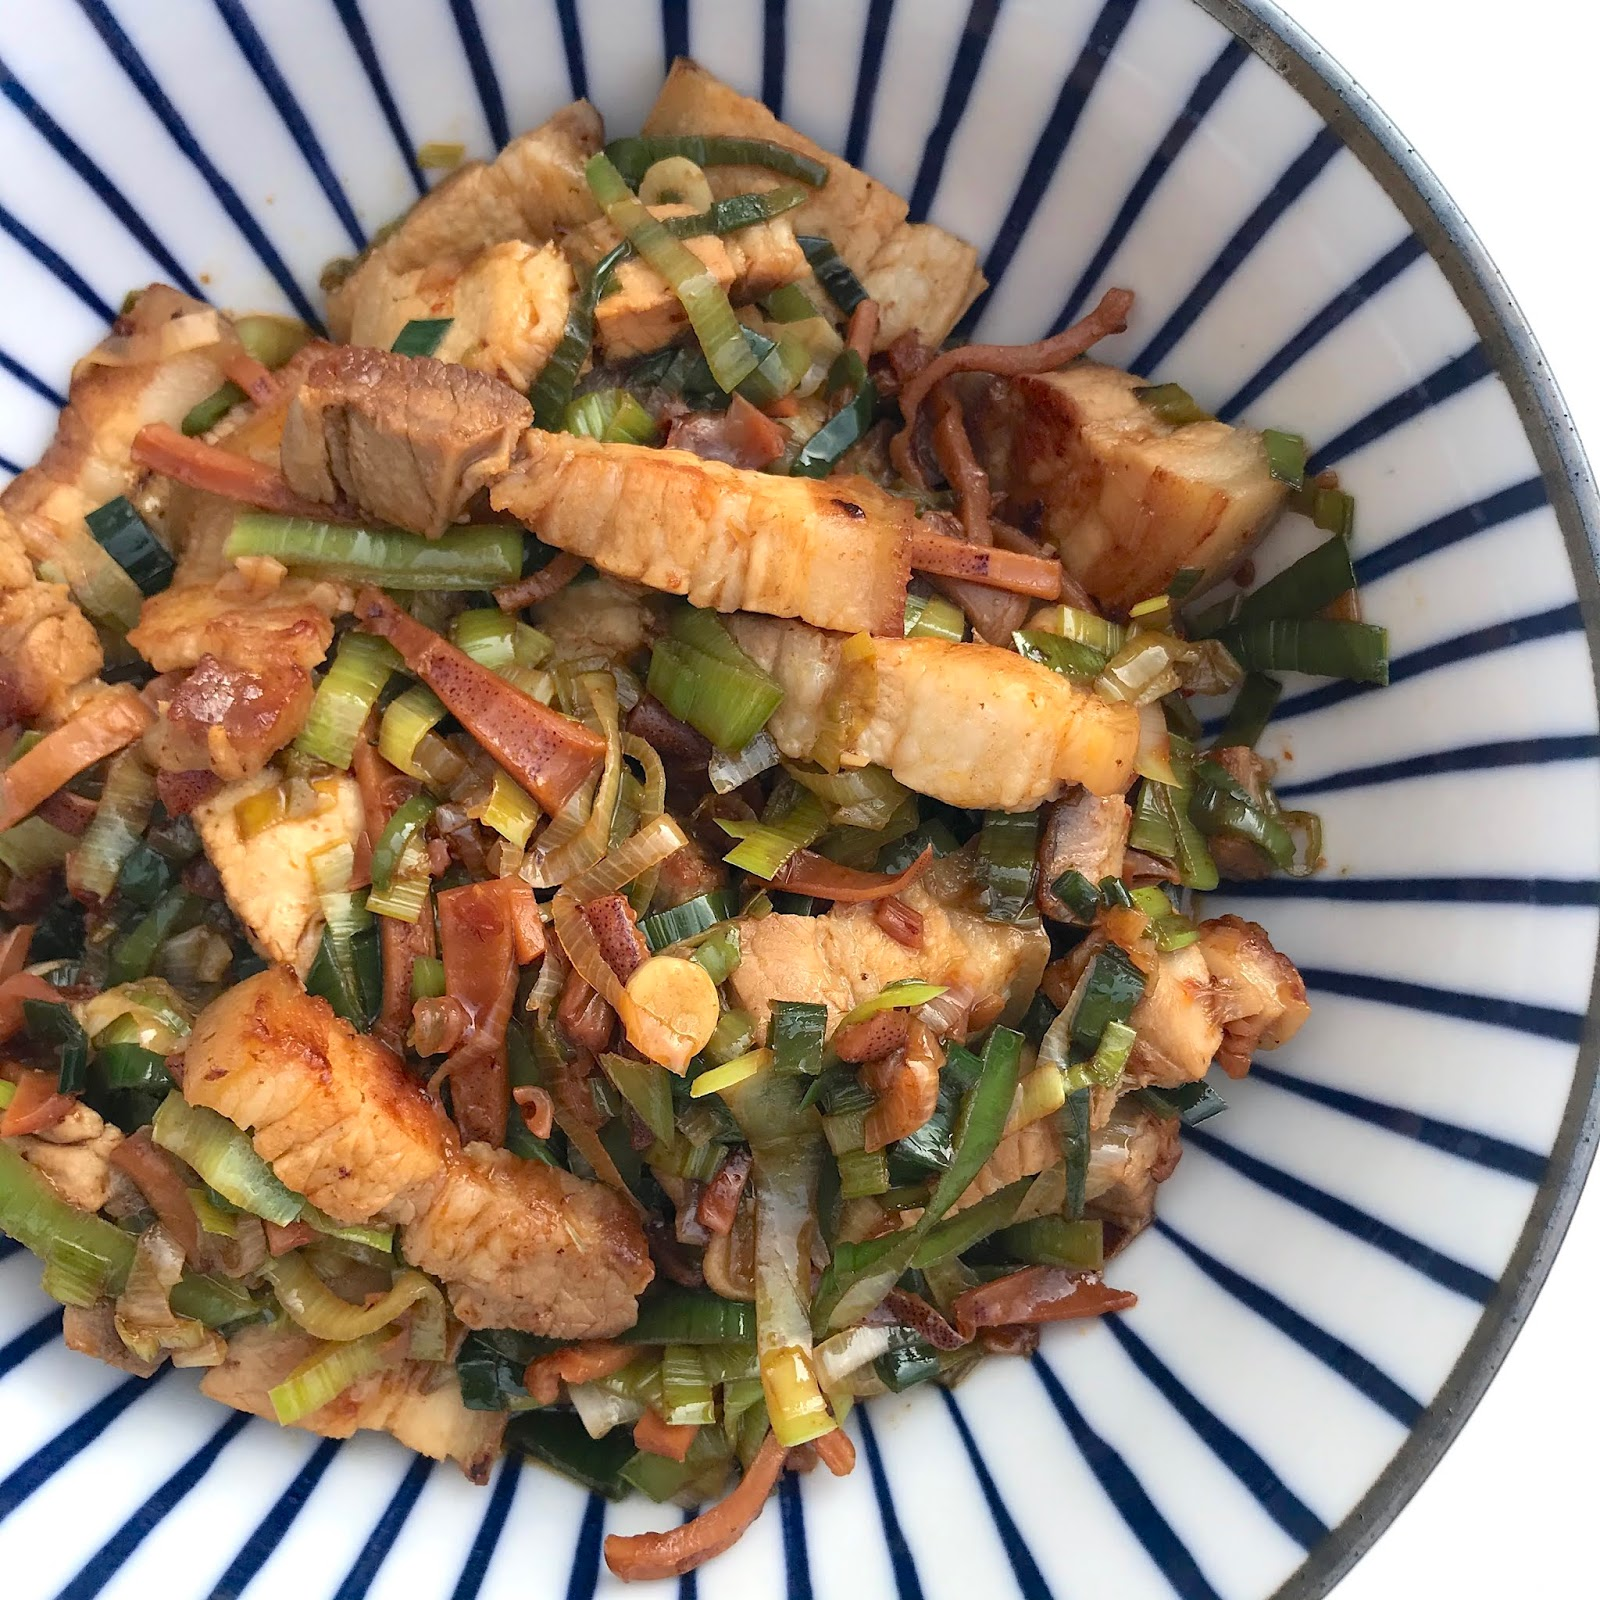 hakka-style-pork-dried-squid-and-leek-stir-fry